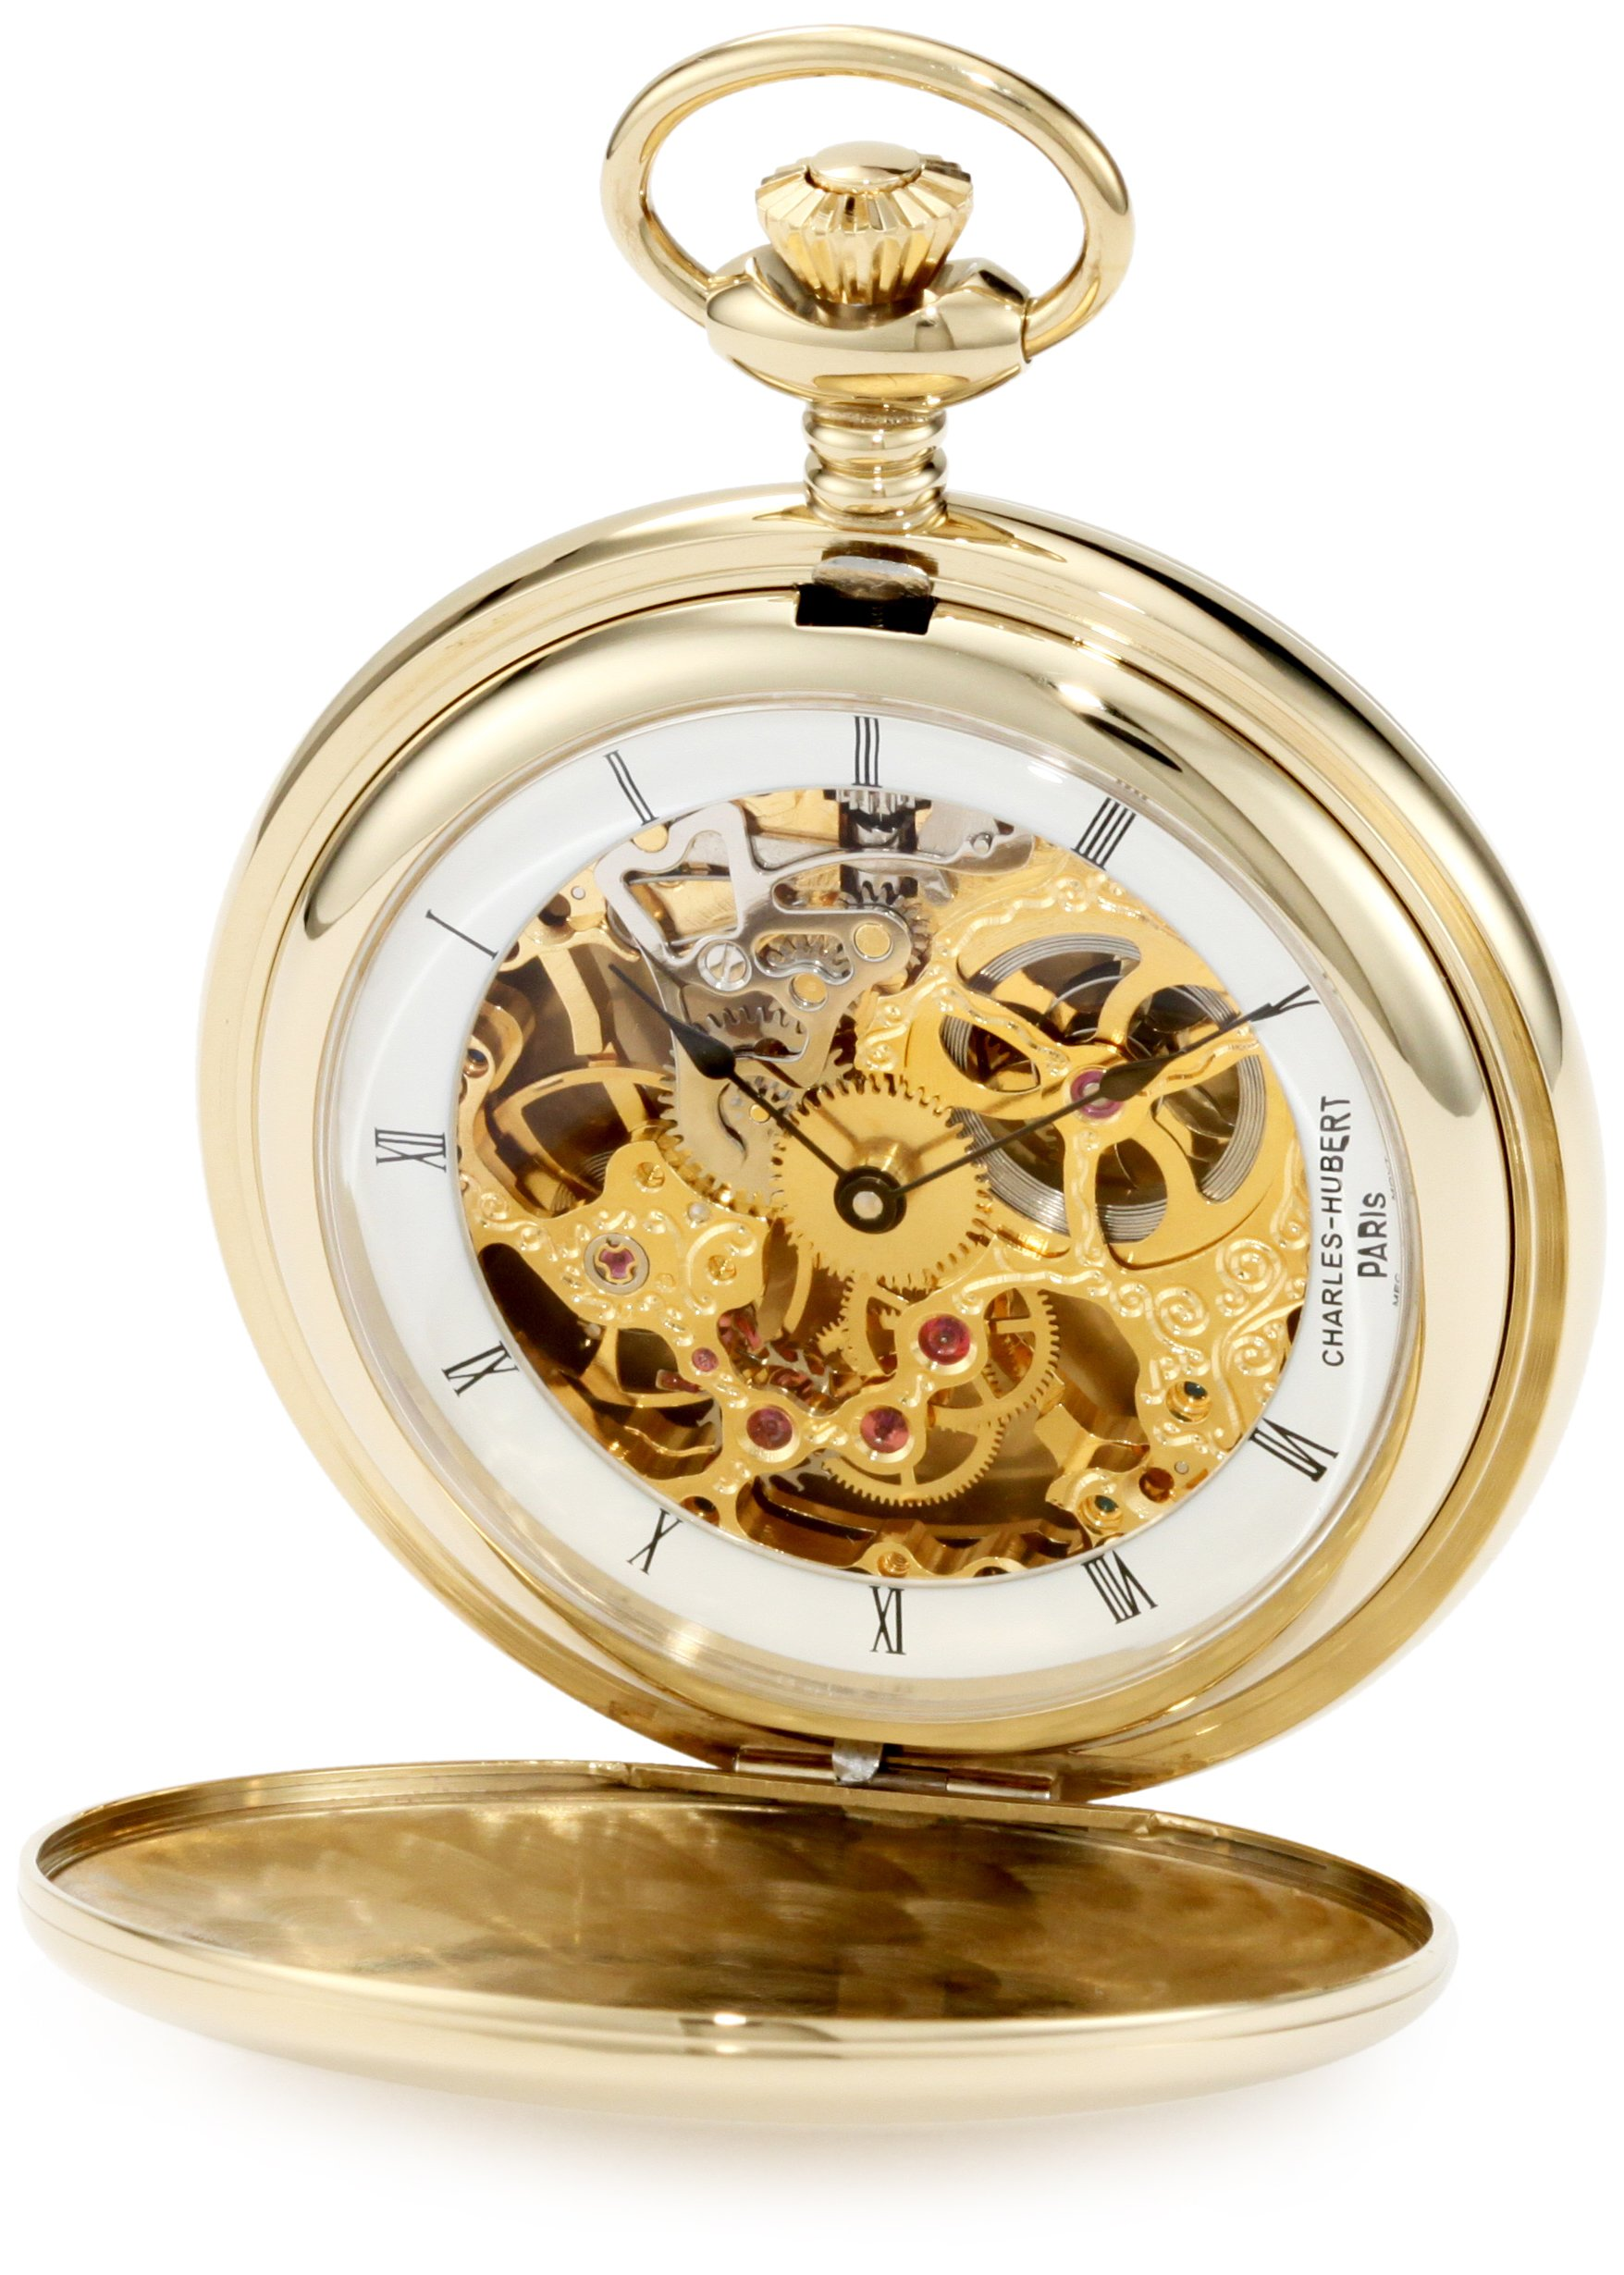 Charles-Hubert, Paris 3905-G Premium Collection Gold-Plated Stainless Steel Polished Finish Double Hunter Case Mechanical Pocket Watch by Charles-Hubert, Paris